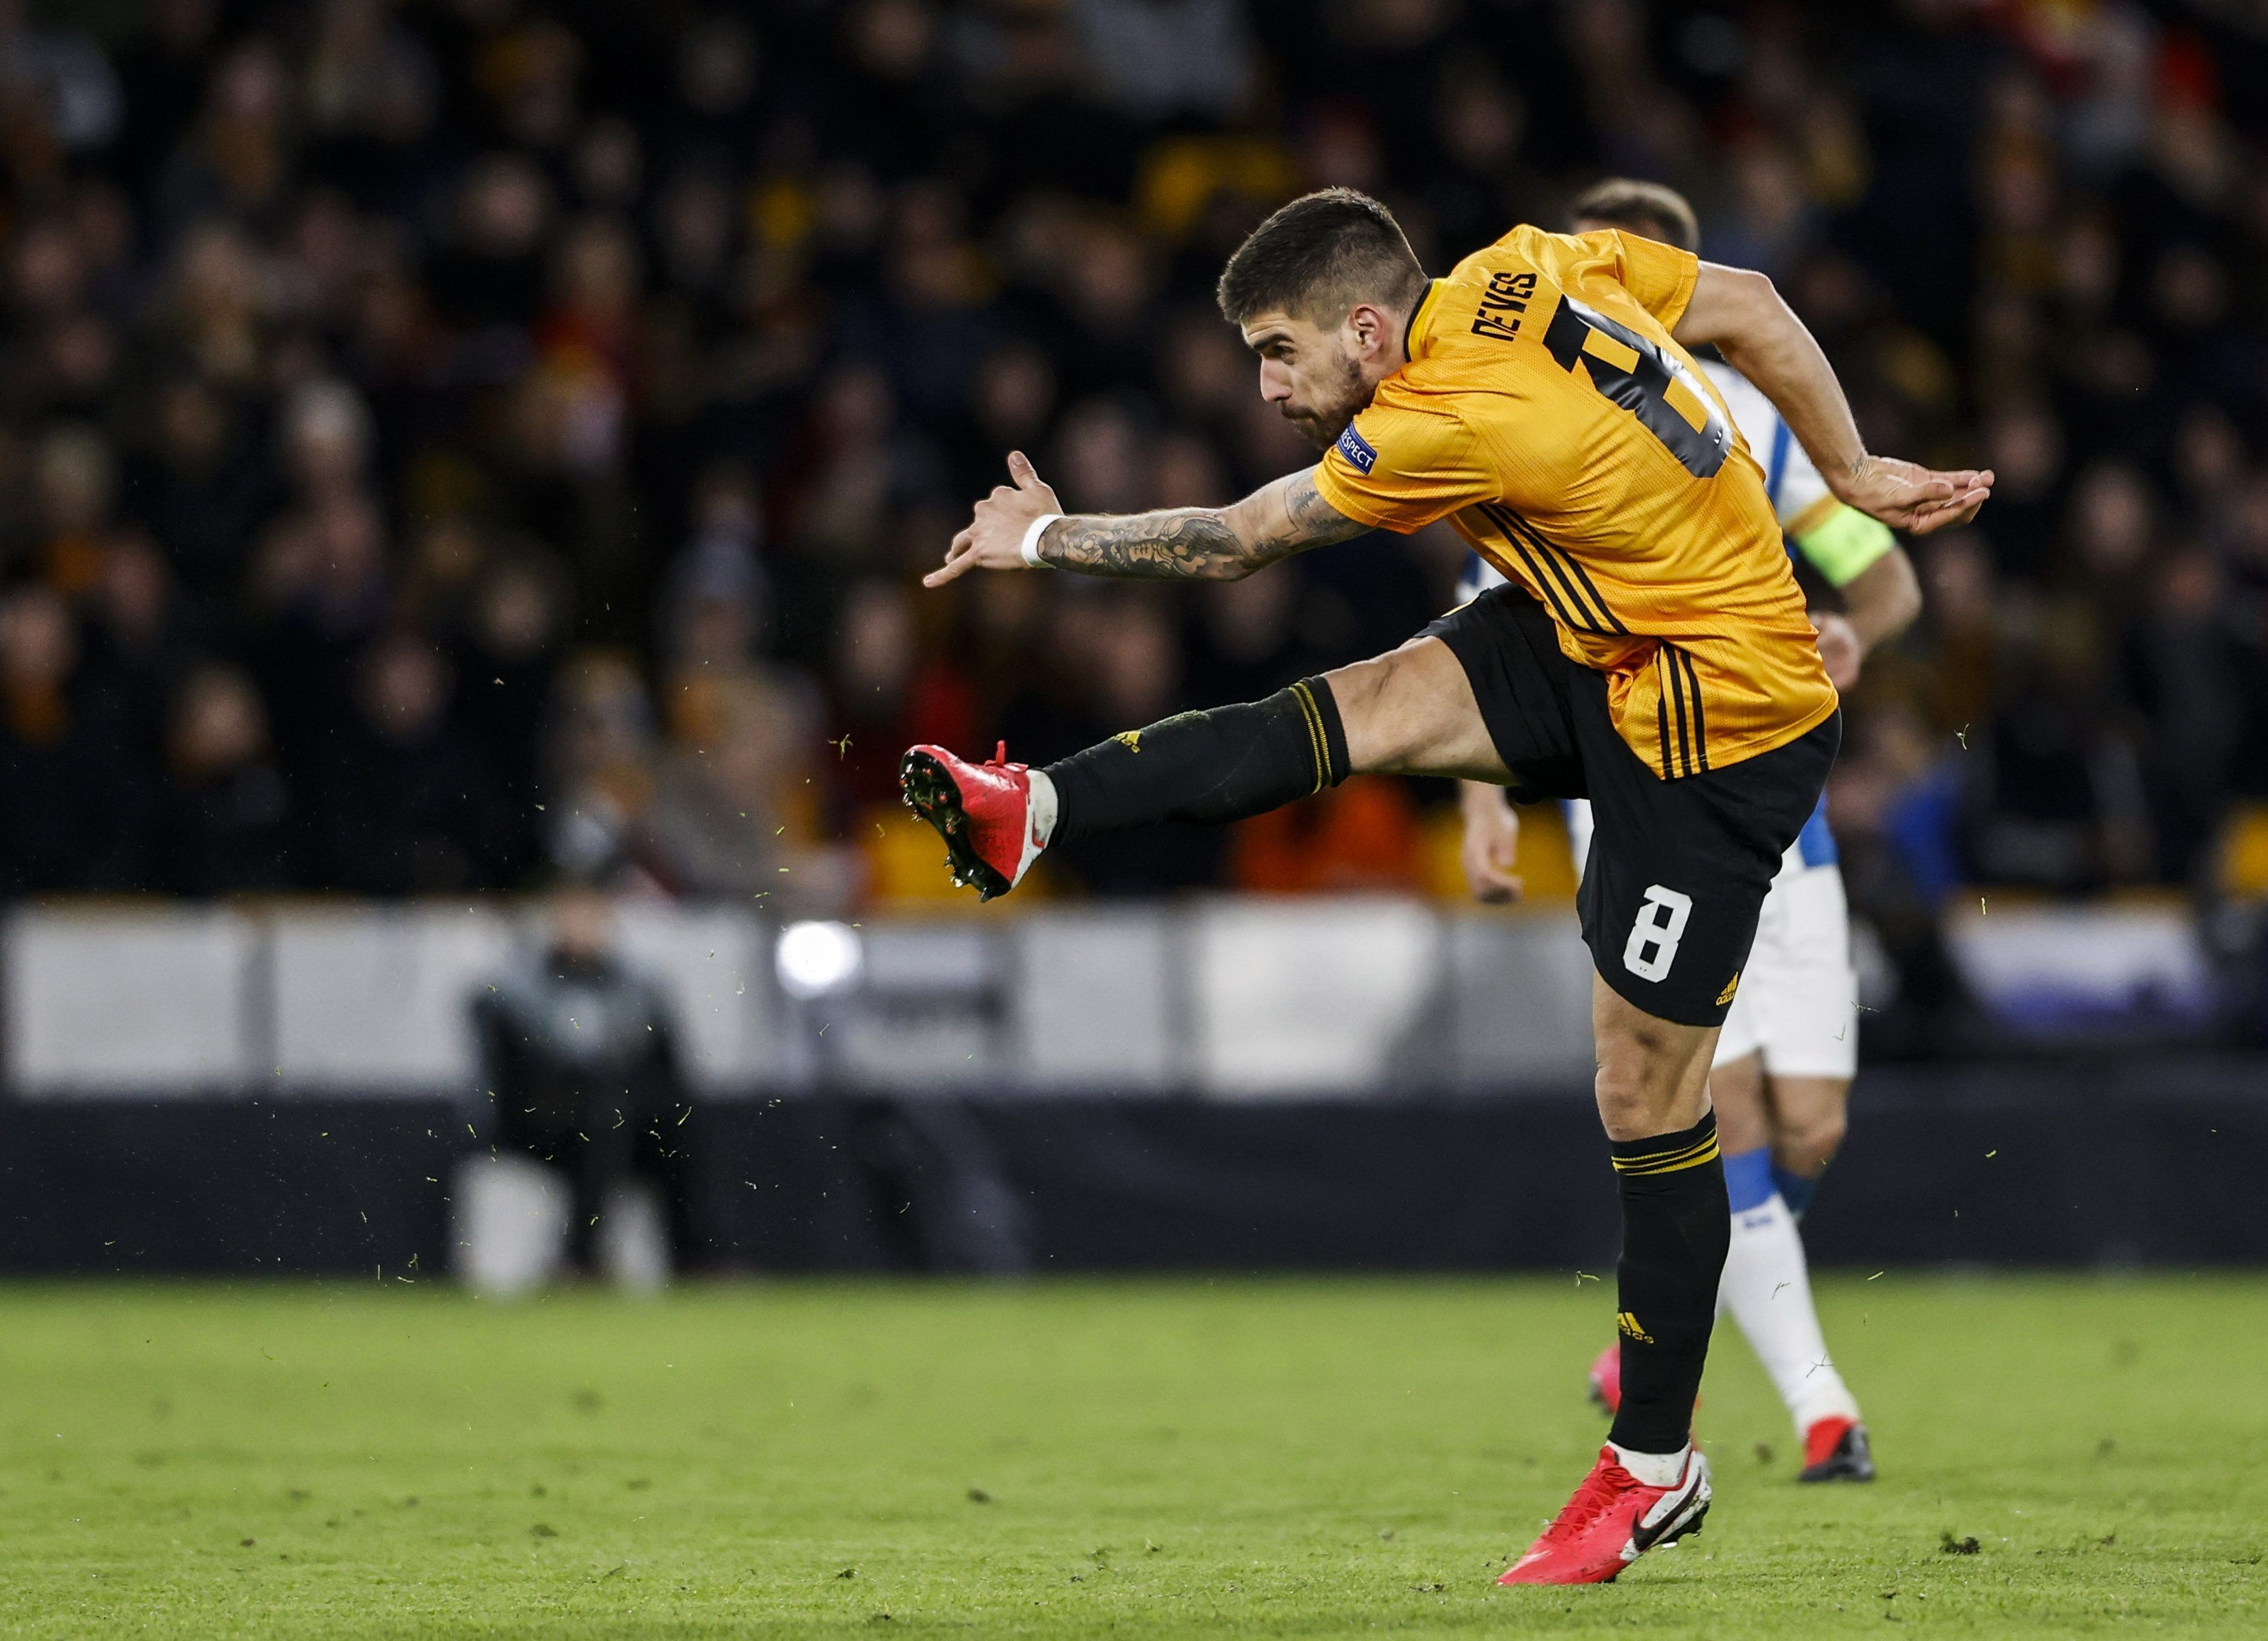 Espanyol vs Wolves FREE Live stream, TV channel, kickoff